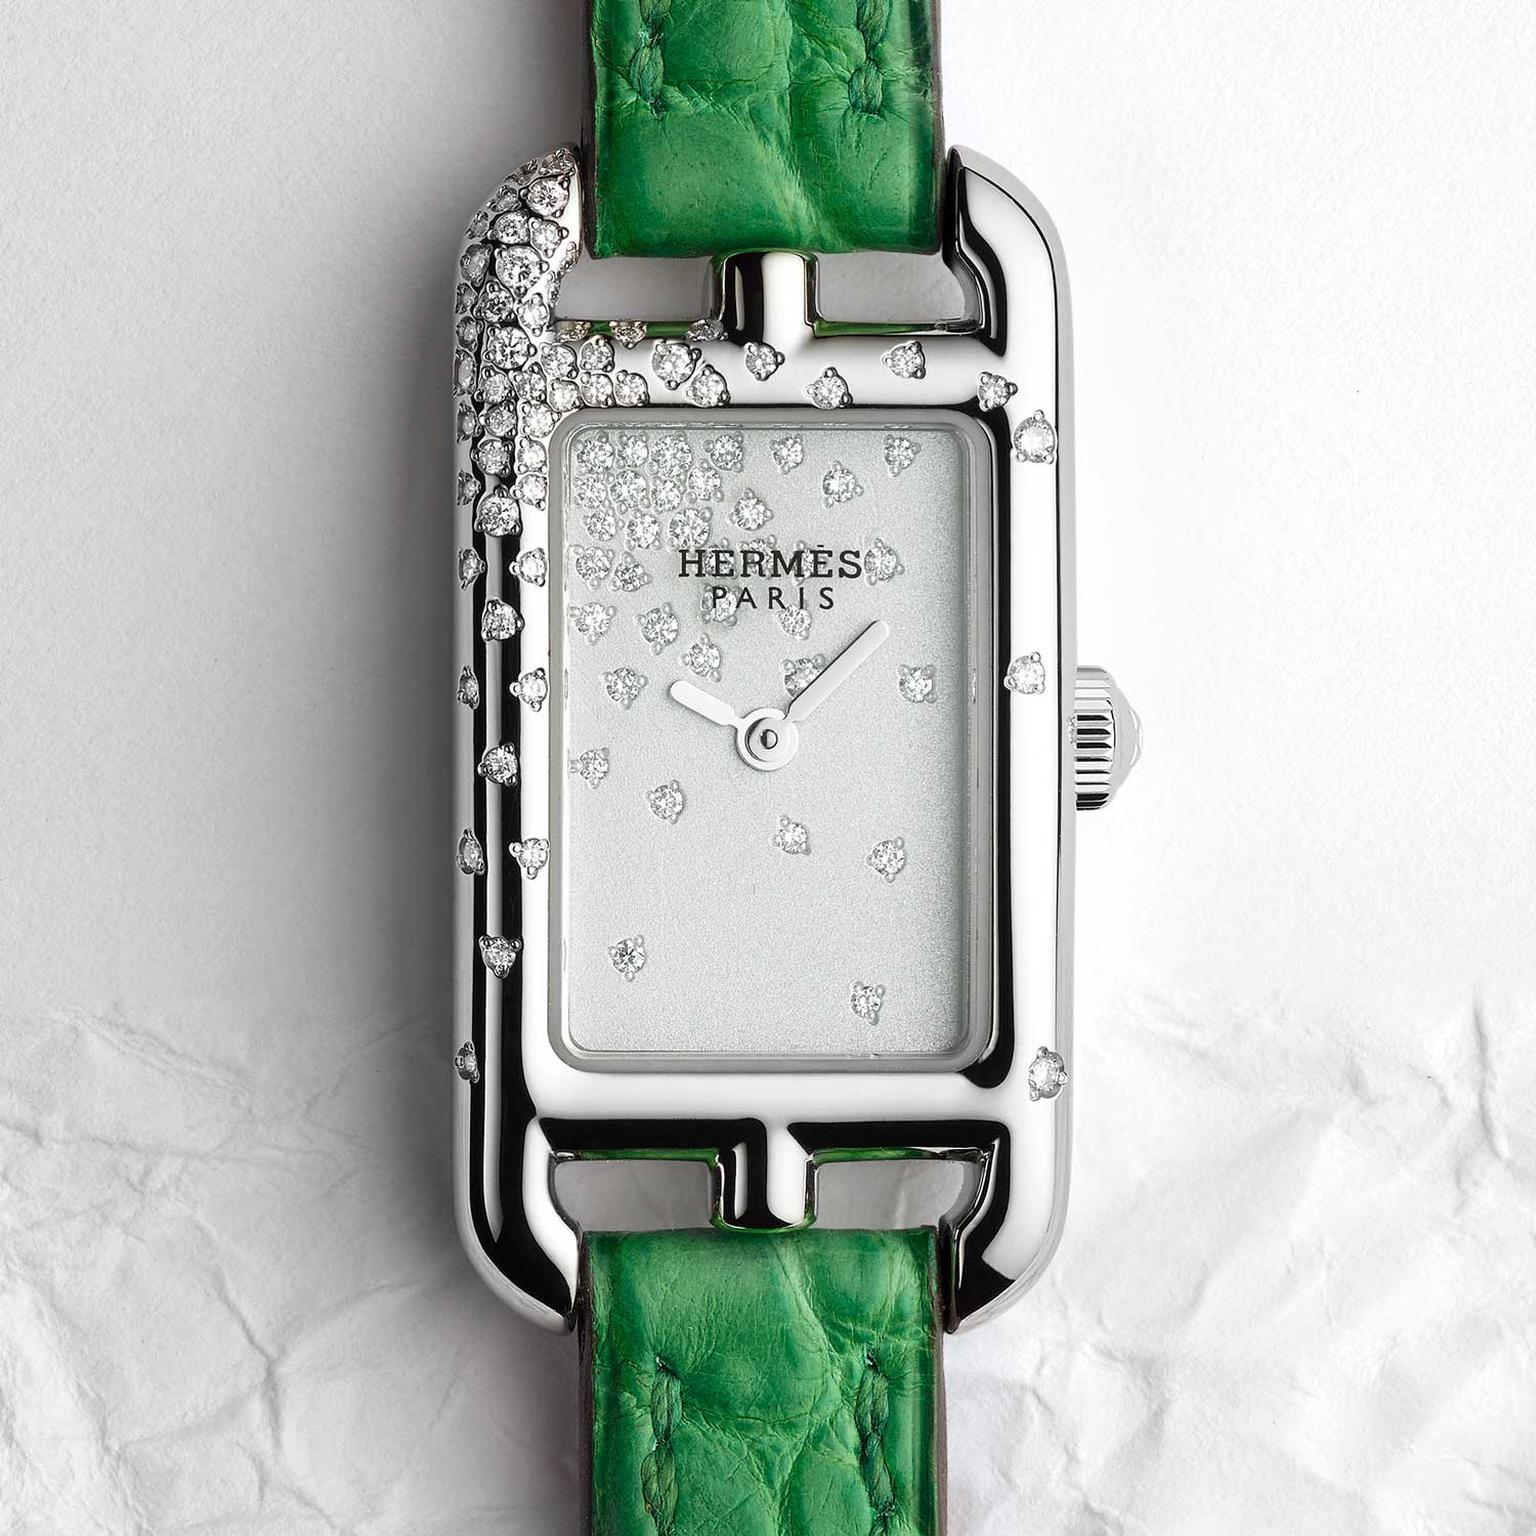 Hermès Nantucket Jeté de diamants watch with green alligator strap